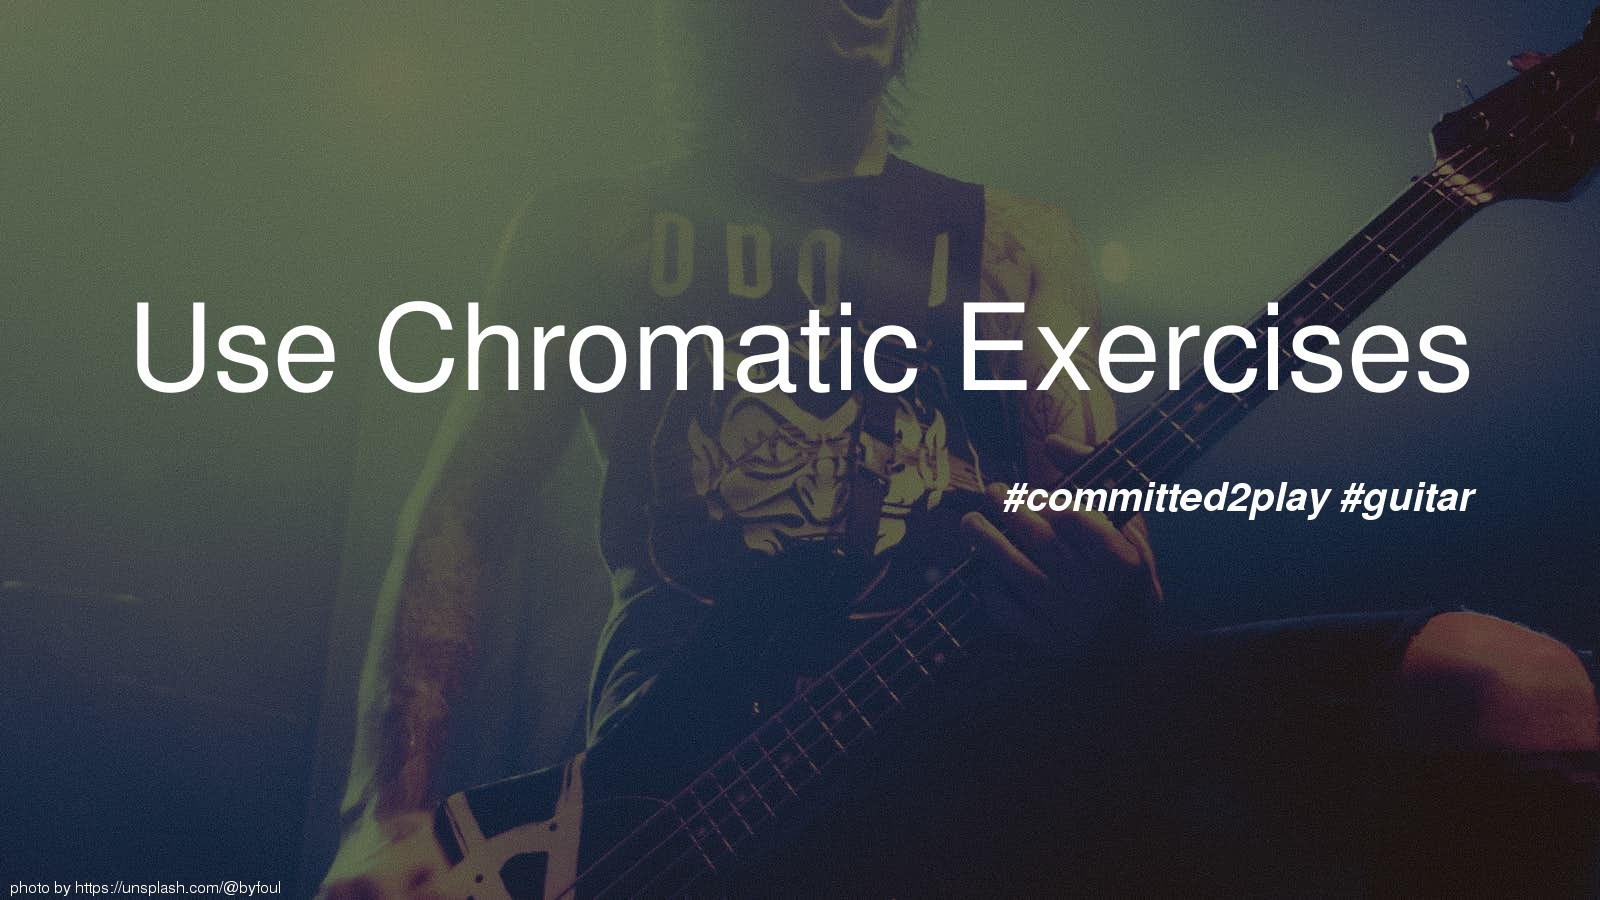 Use Chromatic Exercises